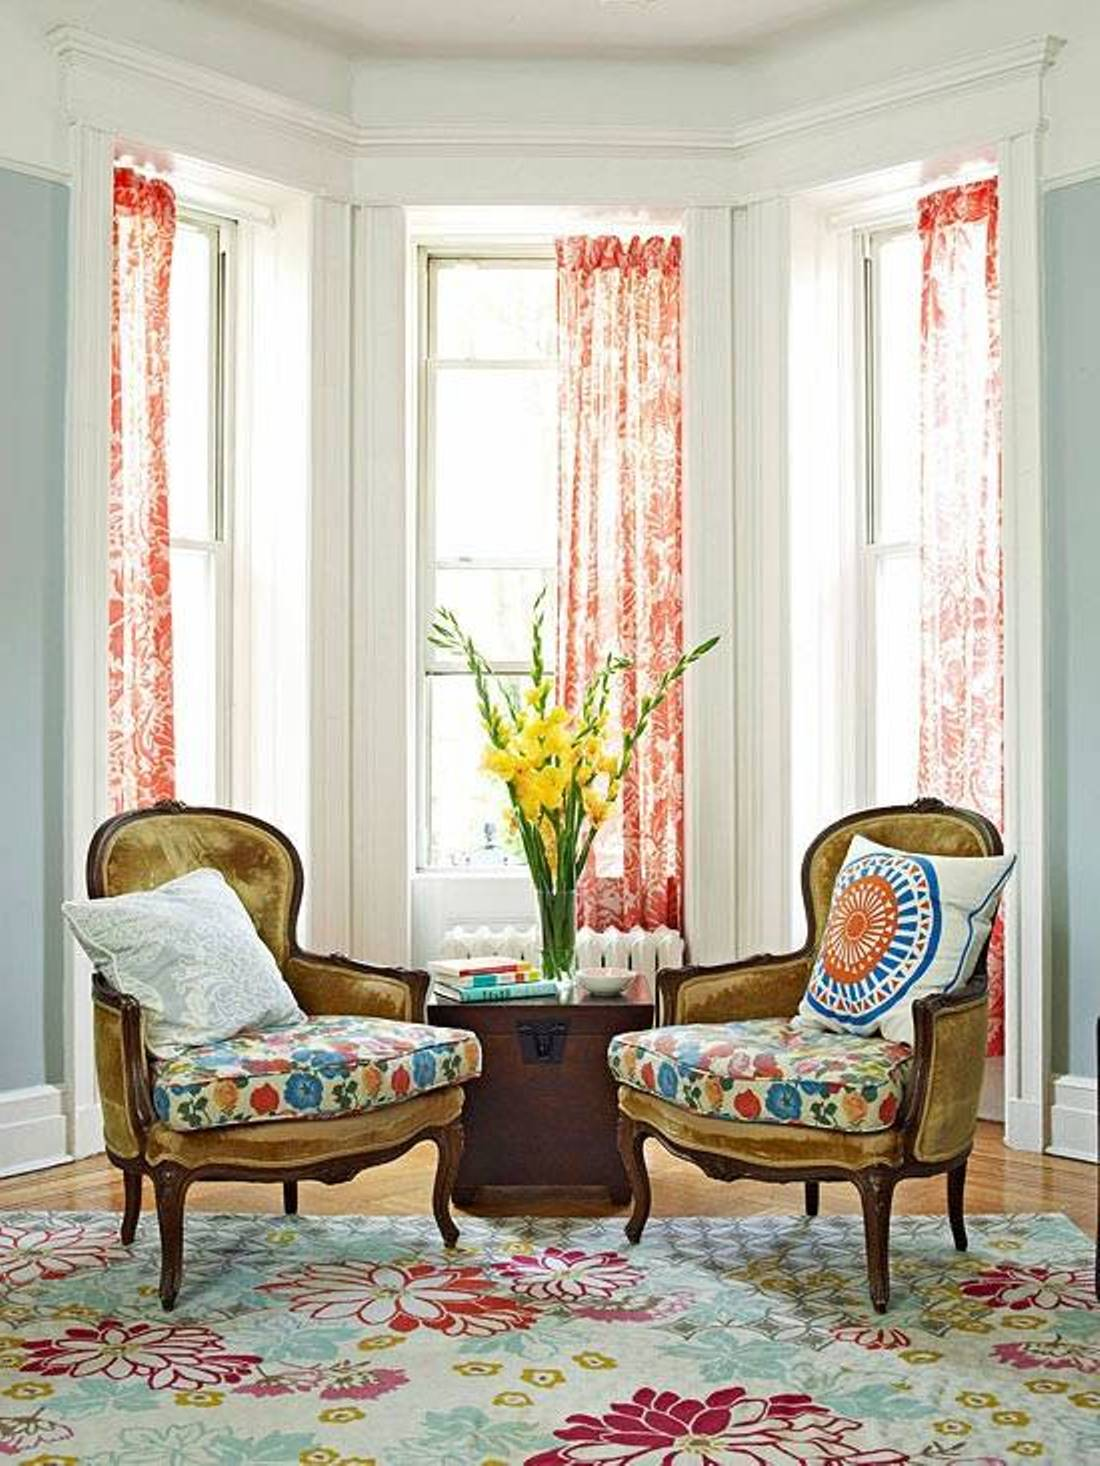 Change sofa look only by beautifying it with throw pillow for Curtain ideas for living room 2012